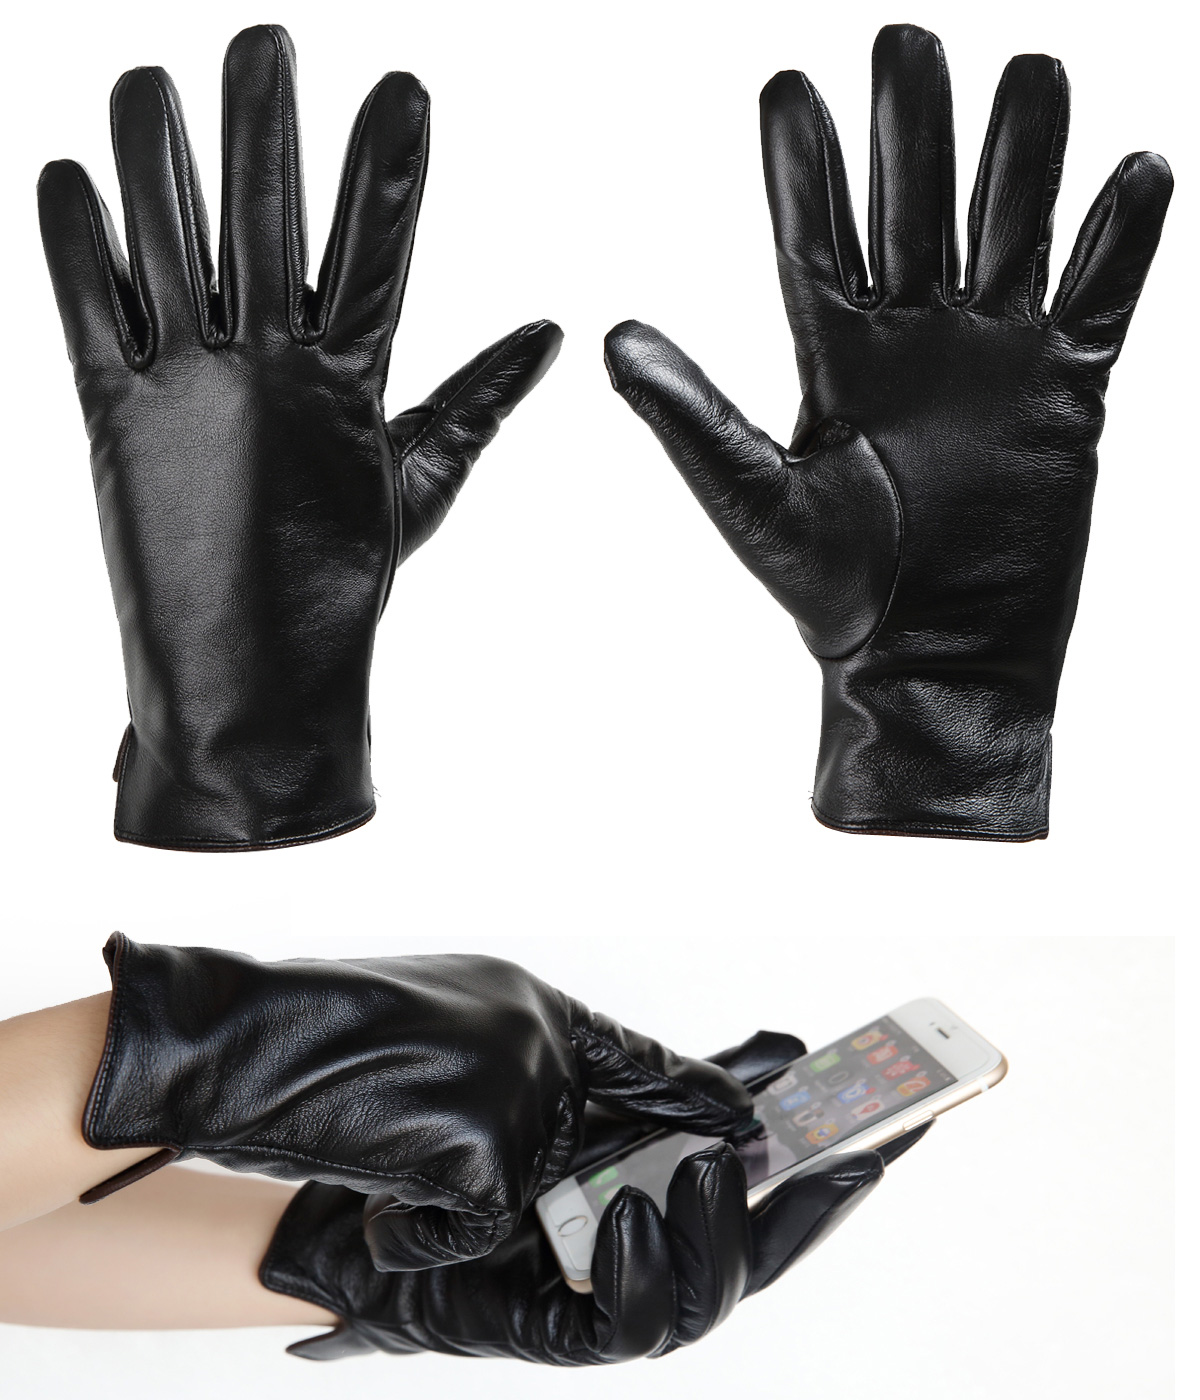 Dasein Men's Winter Warm Fleece Lined Italian Genuine Leather Lambskin Gloves For Working Driving Riding Cycling Skiing